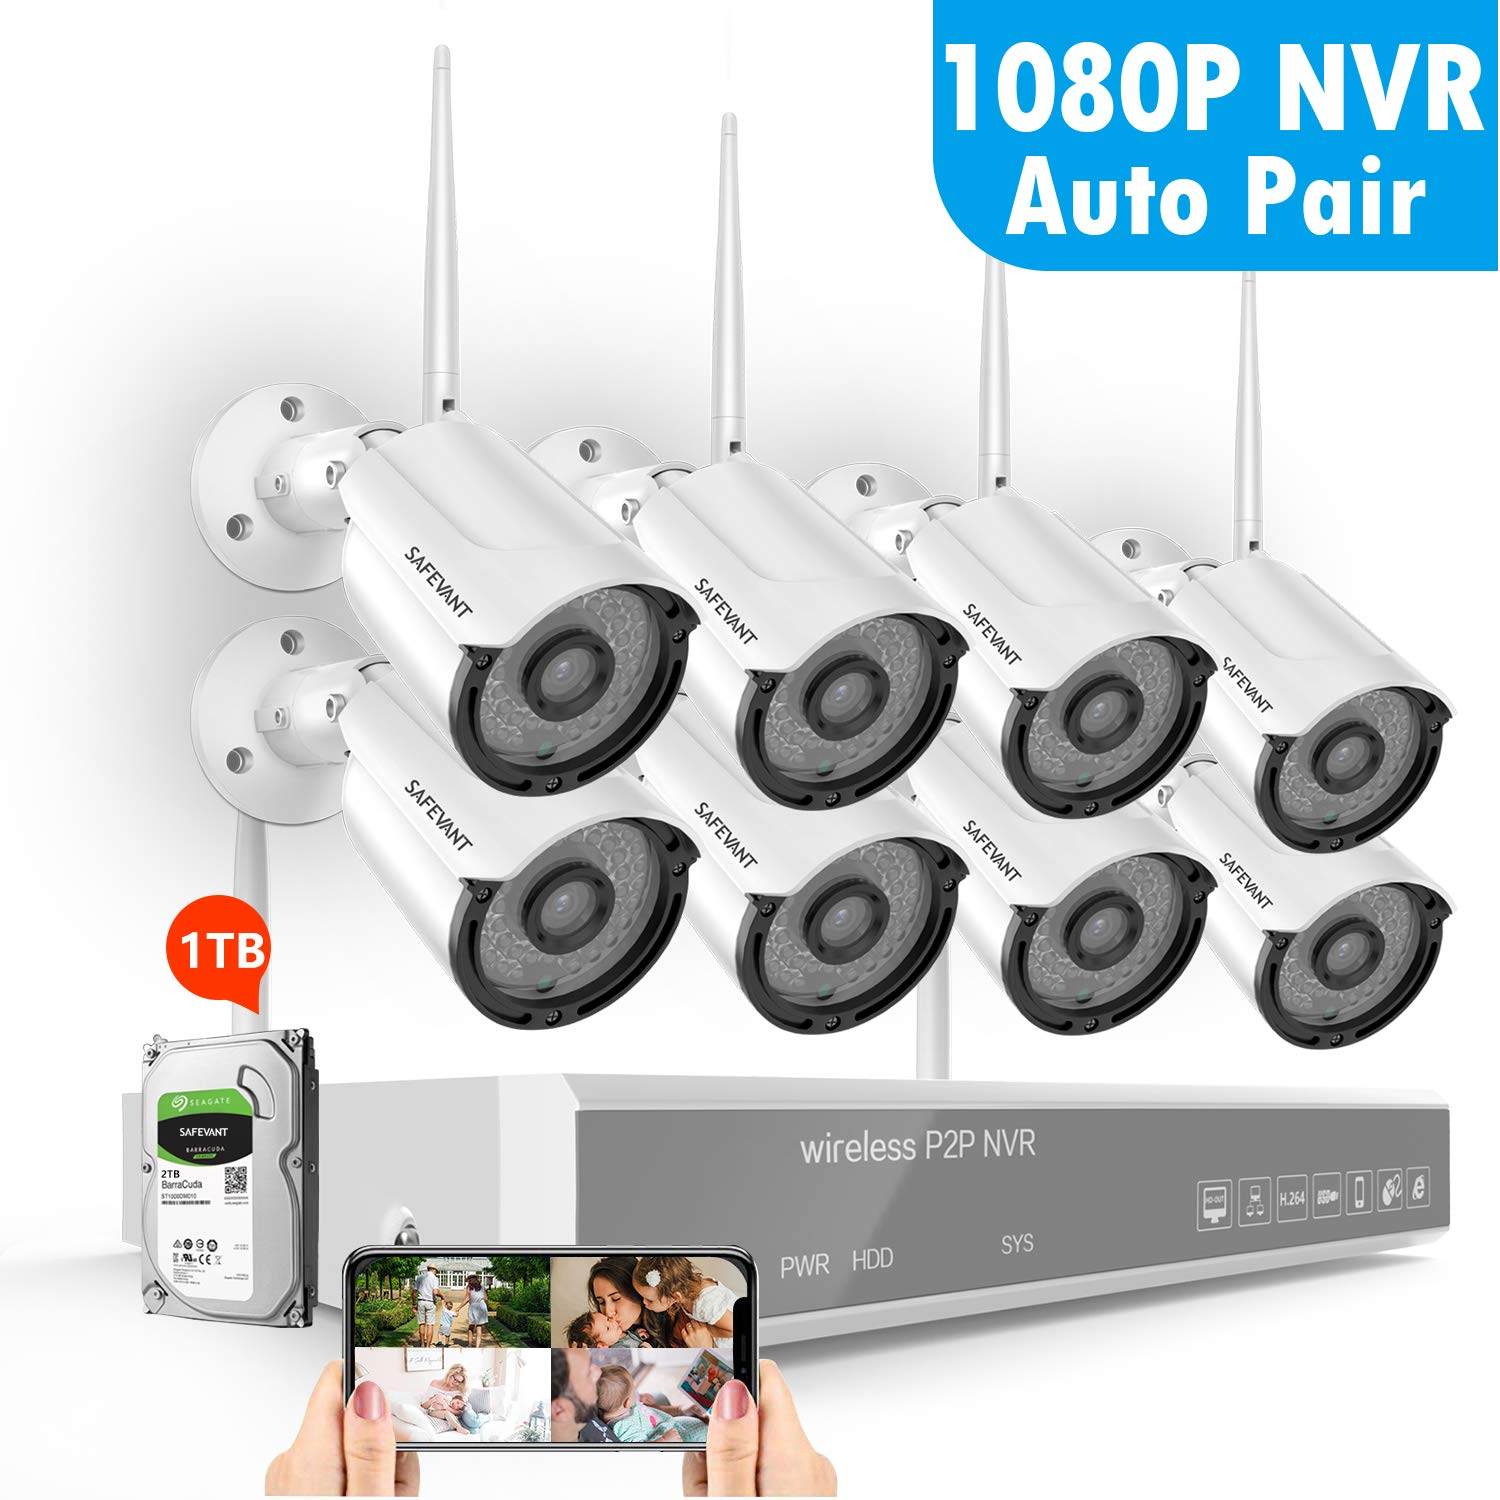 8CH 1080P Security Camera System Wireless,SAFEVANT Wireless Home Security Camera System(1TB Hard Drive),8PCS 960P Indoor/Outdoor IP66 Wireless Security Cameras,P2P,NO Monthly Fee by SAFEVANT